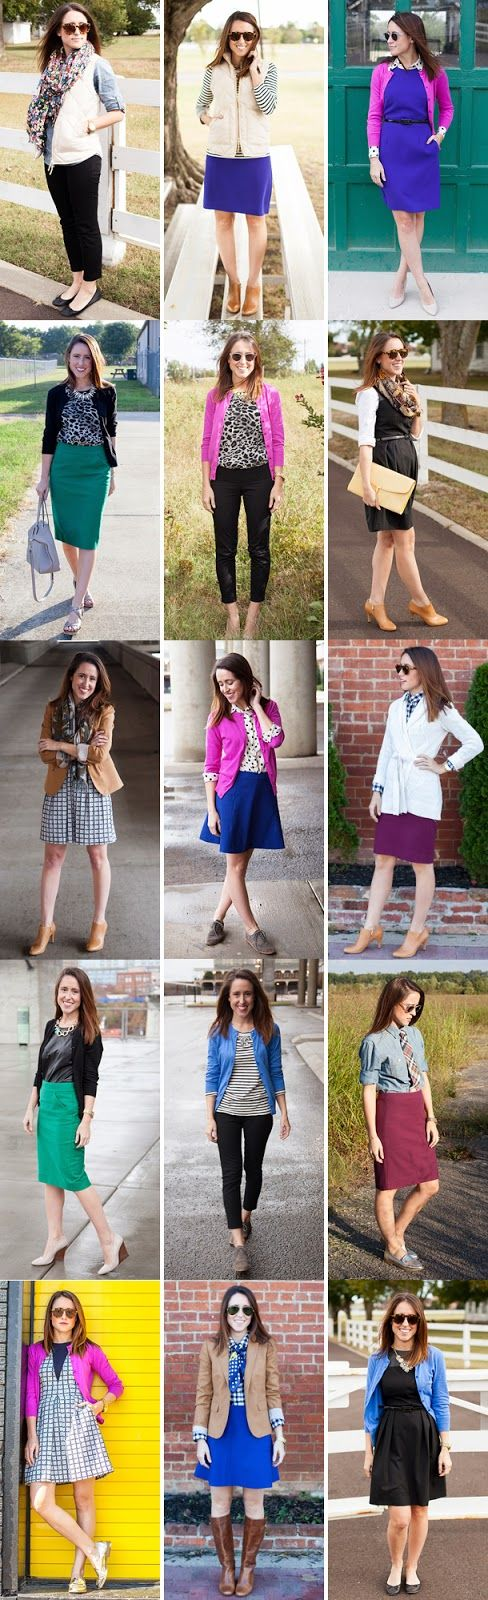 Fashionably Employed   A Modern Mom on a Quest to Find Balance in Style: Sophisticated Style Spotlight ~ Here & Now